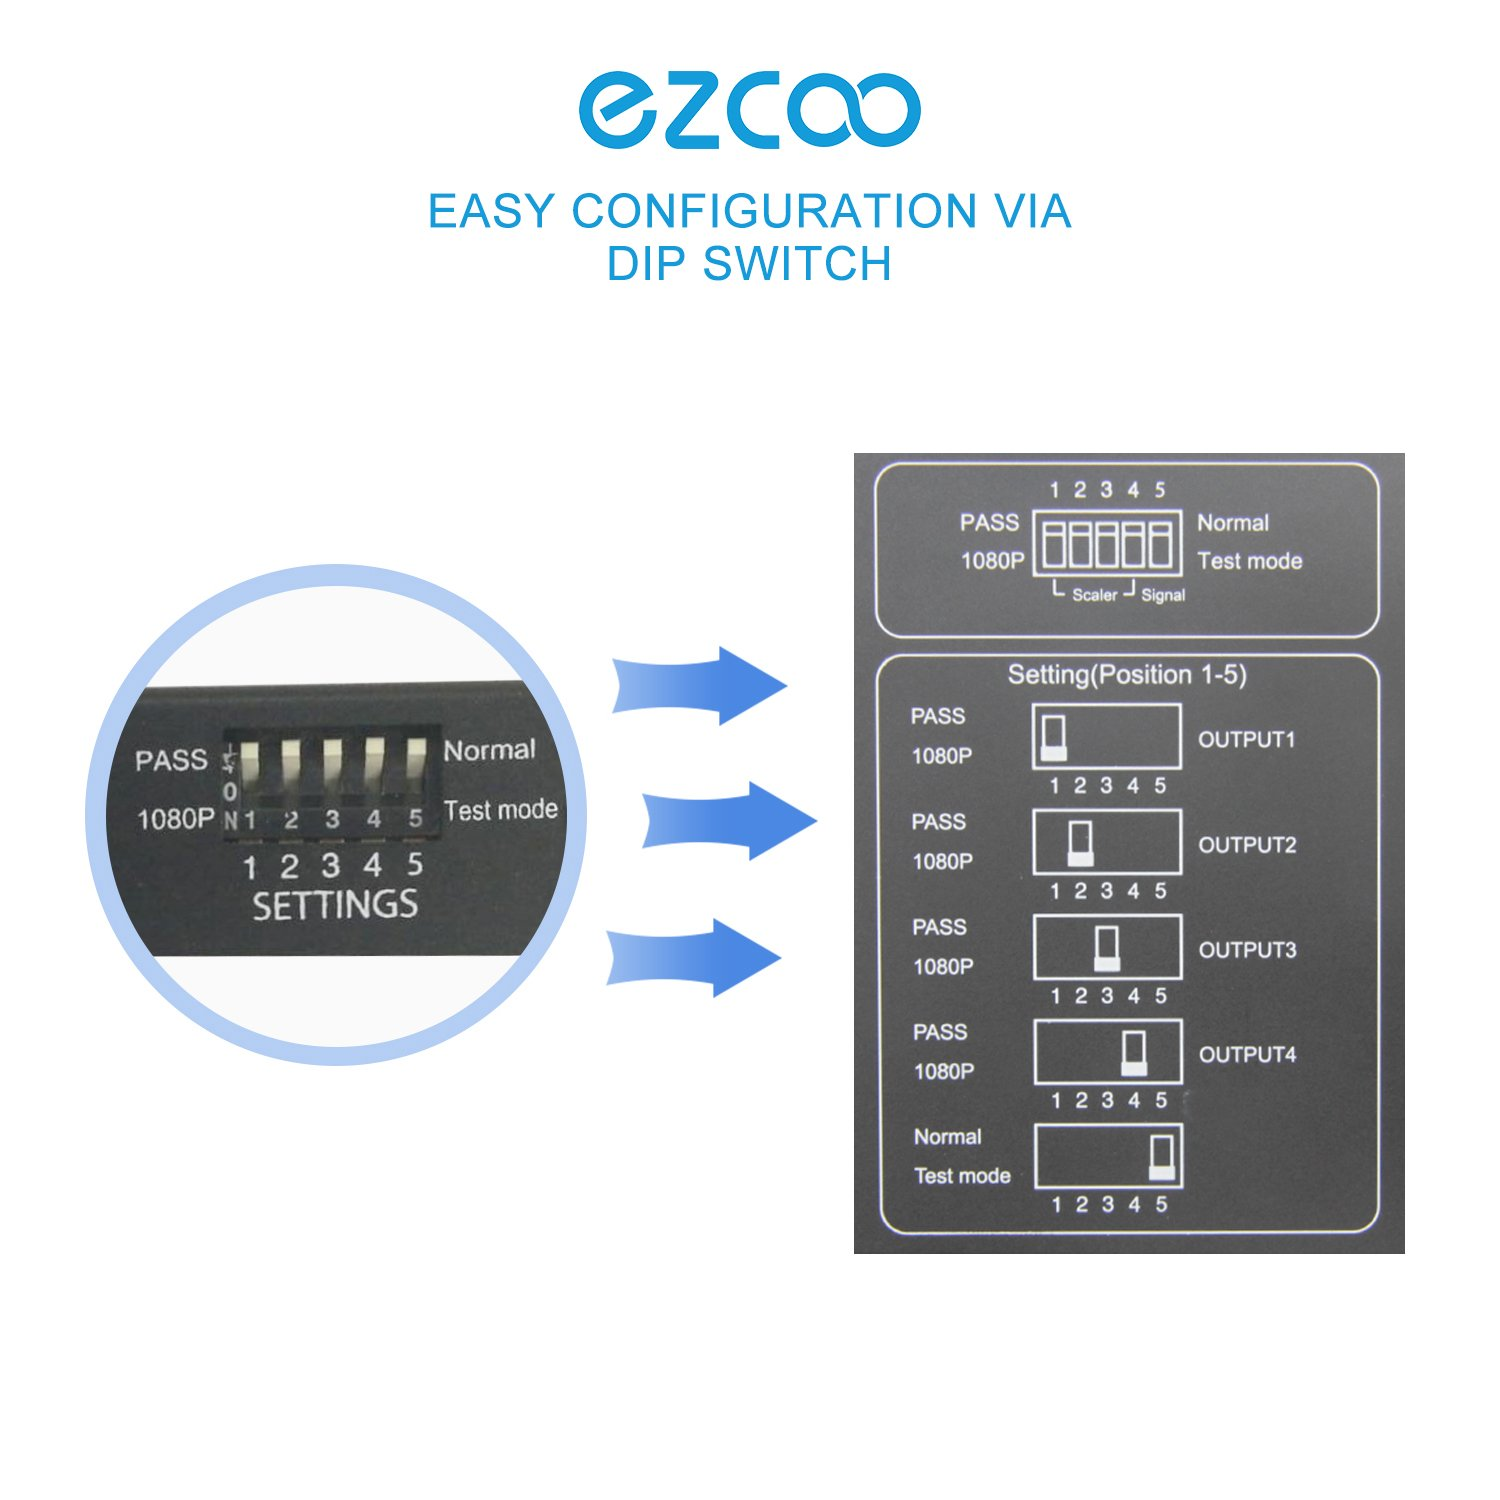 ezcoo 4K HDMI 2 0 Splitter HDR Scaler Switch, HDMI Splitter 1x4 4K 60Hz  4:4:4 18Gbps HDR Dolby Vision, HDCP 2 2, Smart EDID, Four HDMI Output 4K